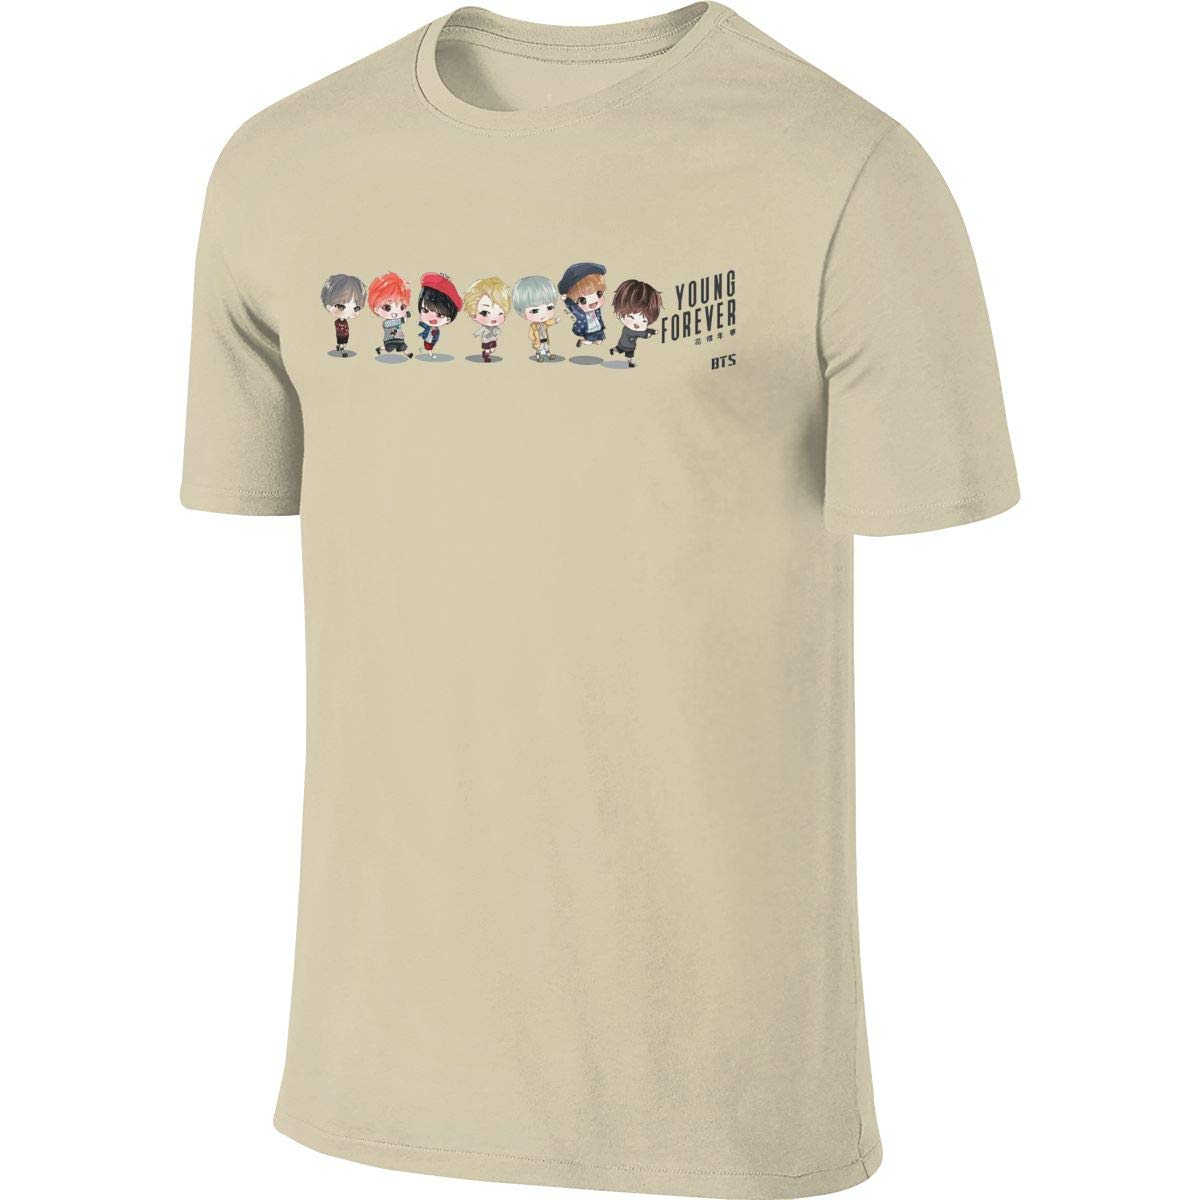 JUDSON Mens Design Cool Tees Cartoon BTS Young Forever Tshirt